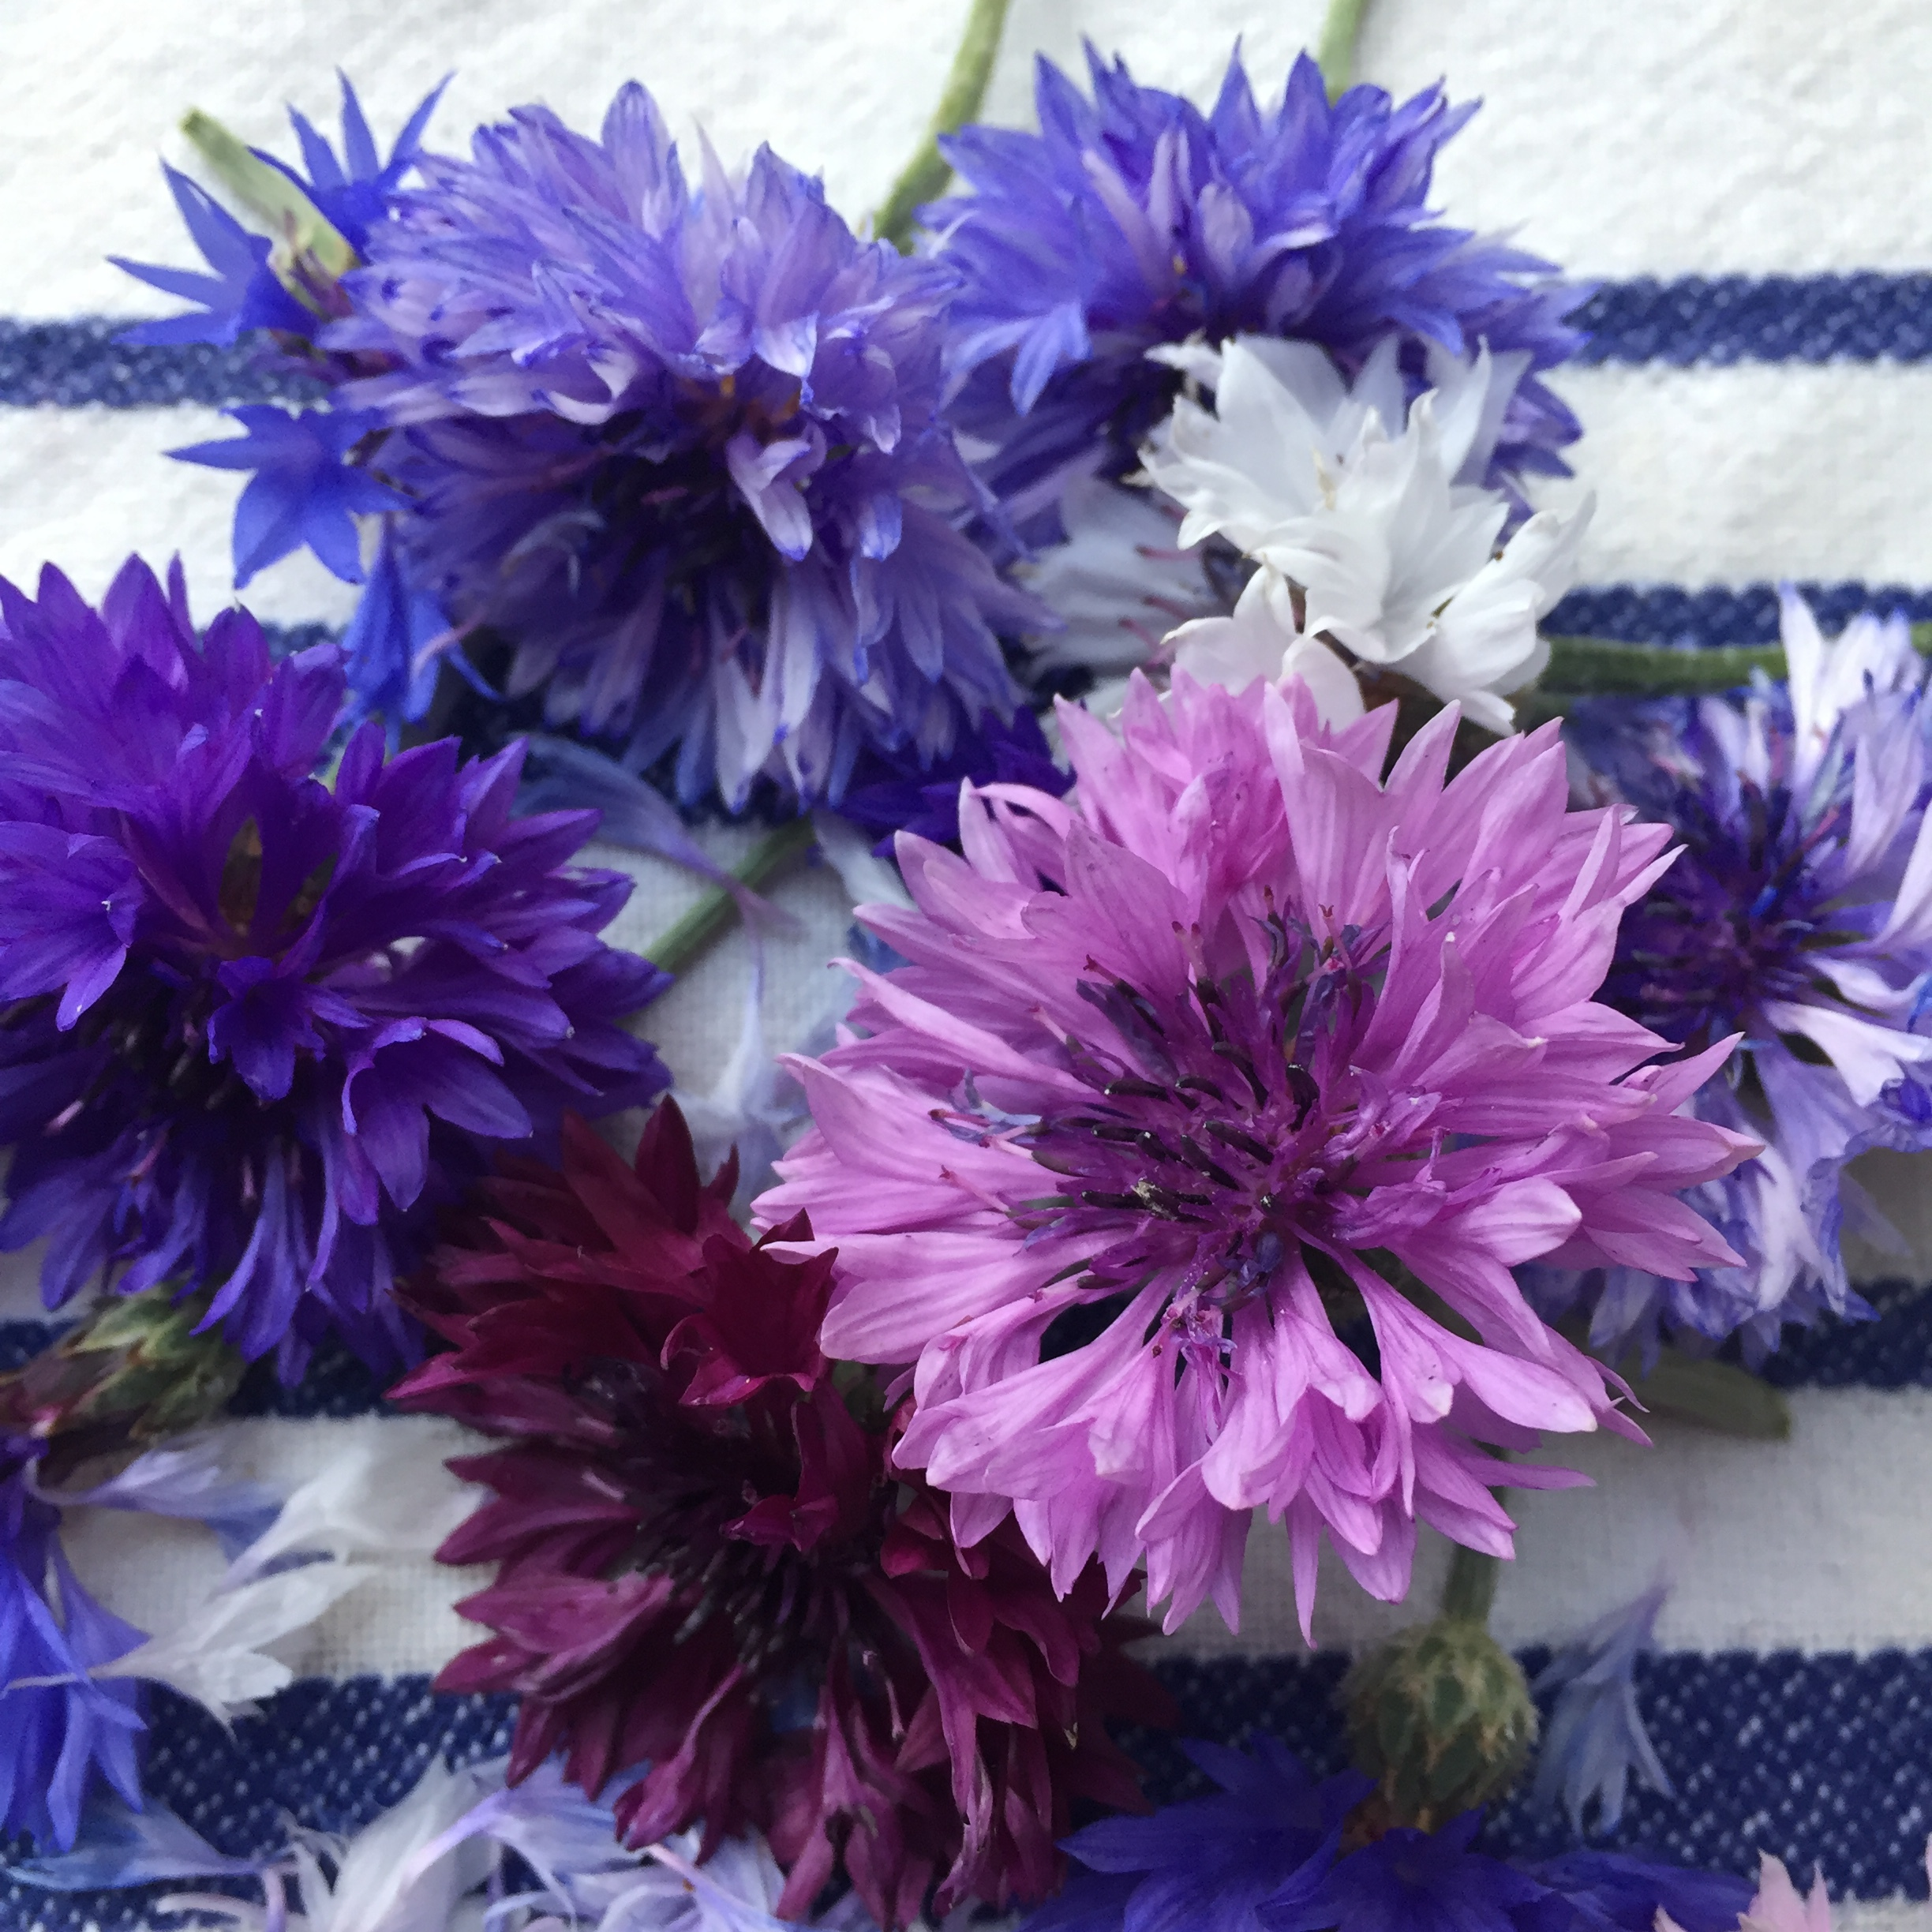 REF:20  'centaurea cyanus'  bleuet (mixte), mixed cornflowers  flower petals can be scattered over salads, cakes. add a spicy tone to rice, pancakes or in summer drinks.